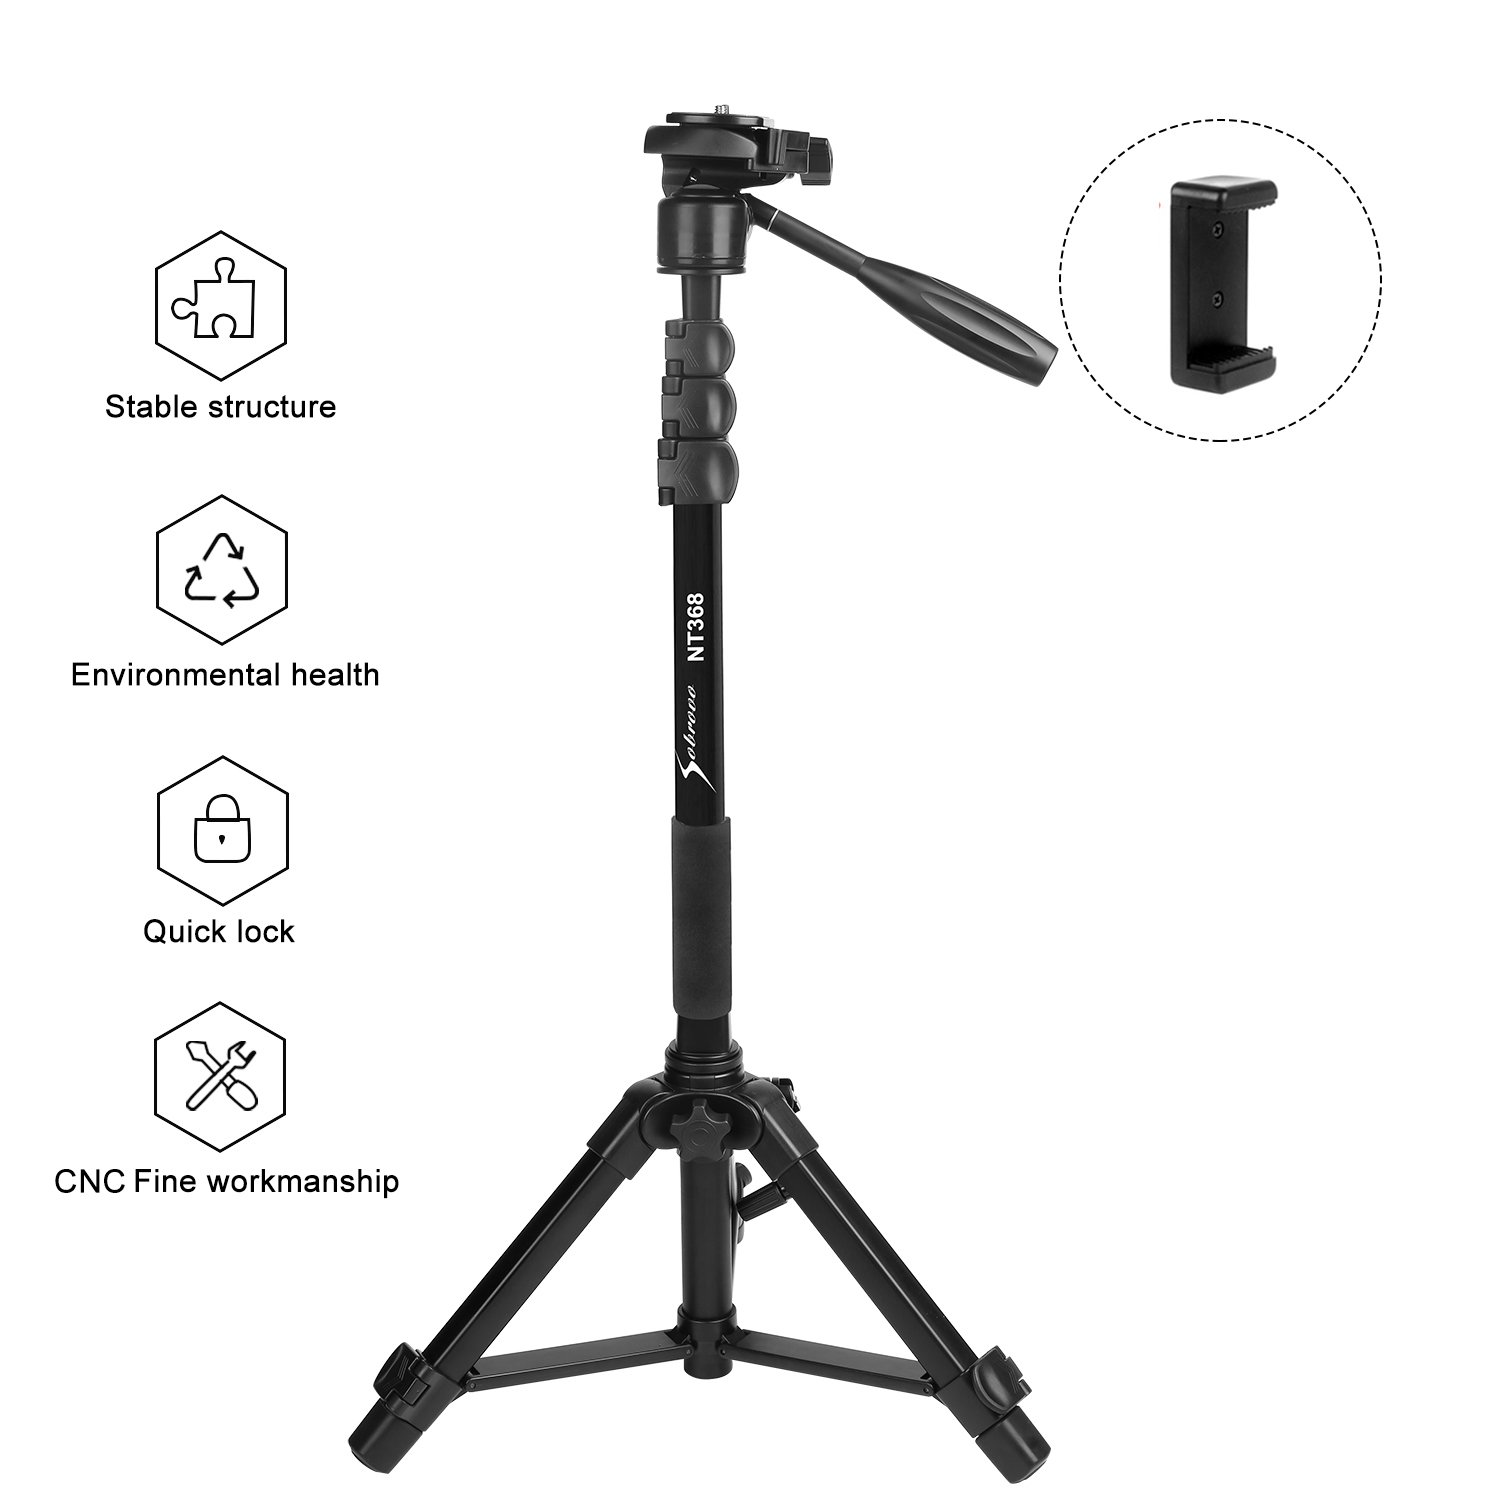 Sobrovo Camera Monopod 70'' Removable Aluminum Telescoping Camera Tripod With Pan-Head For Canon Nikon DSLR DV Quick Release Plate Including Carrying Bag